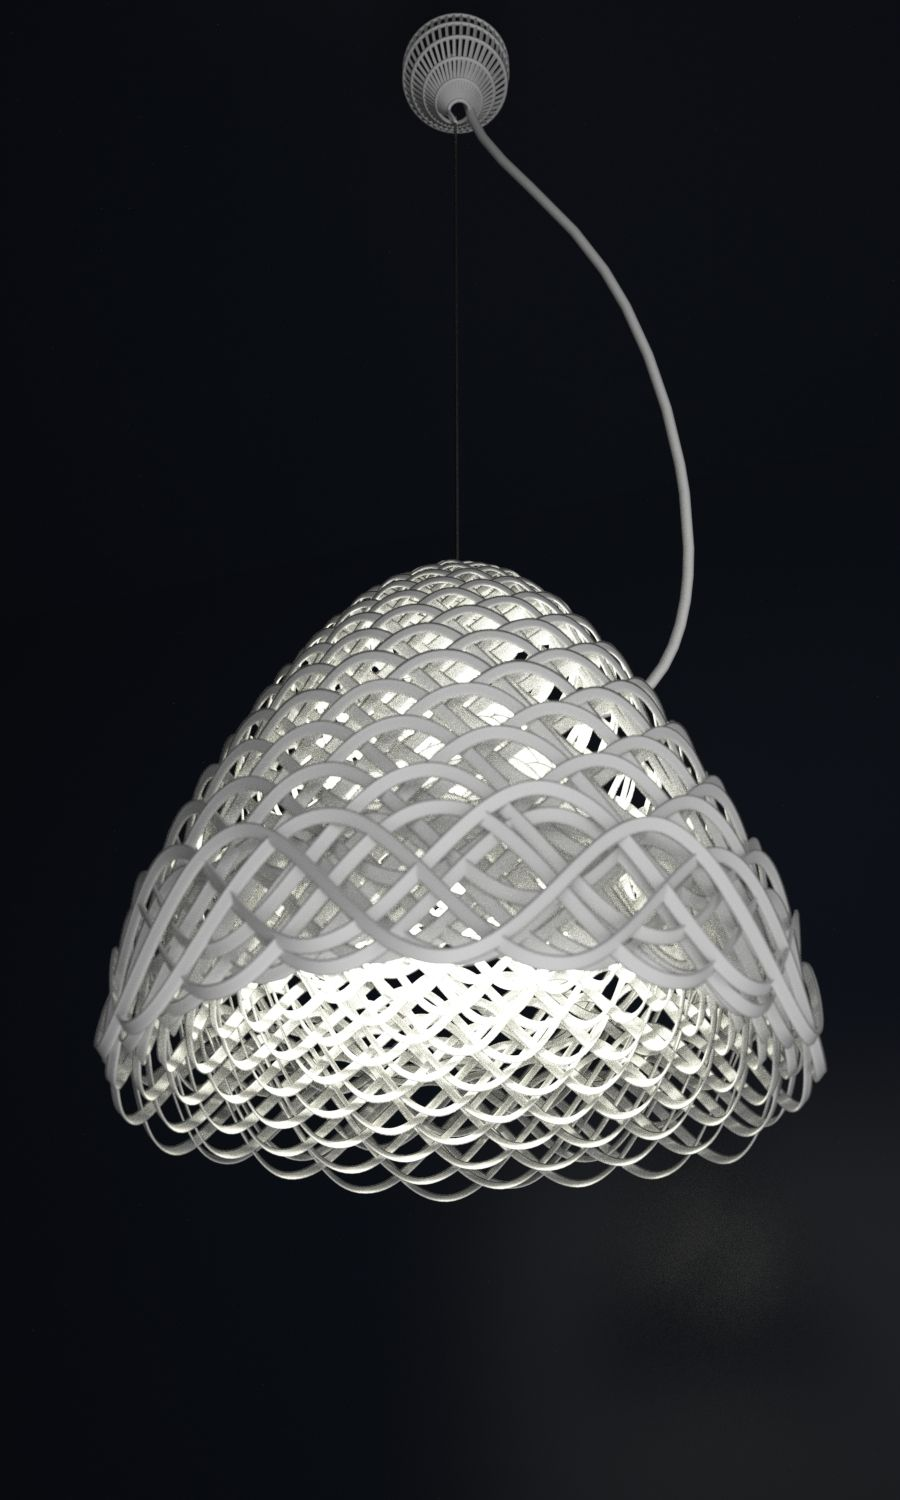 White Pendant Lamp 3d Print Lighting Beleuchtung Luminaires Leds Lustres Iluminacao